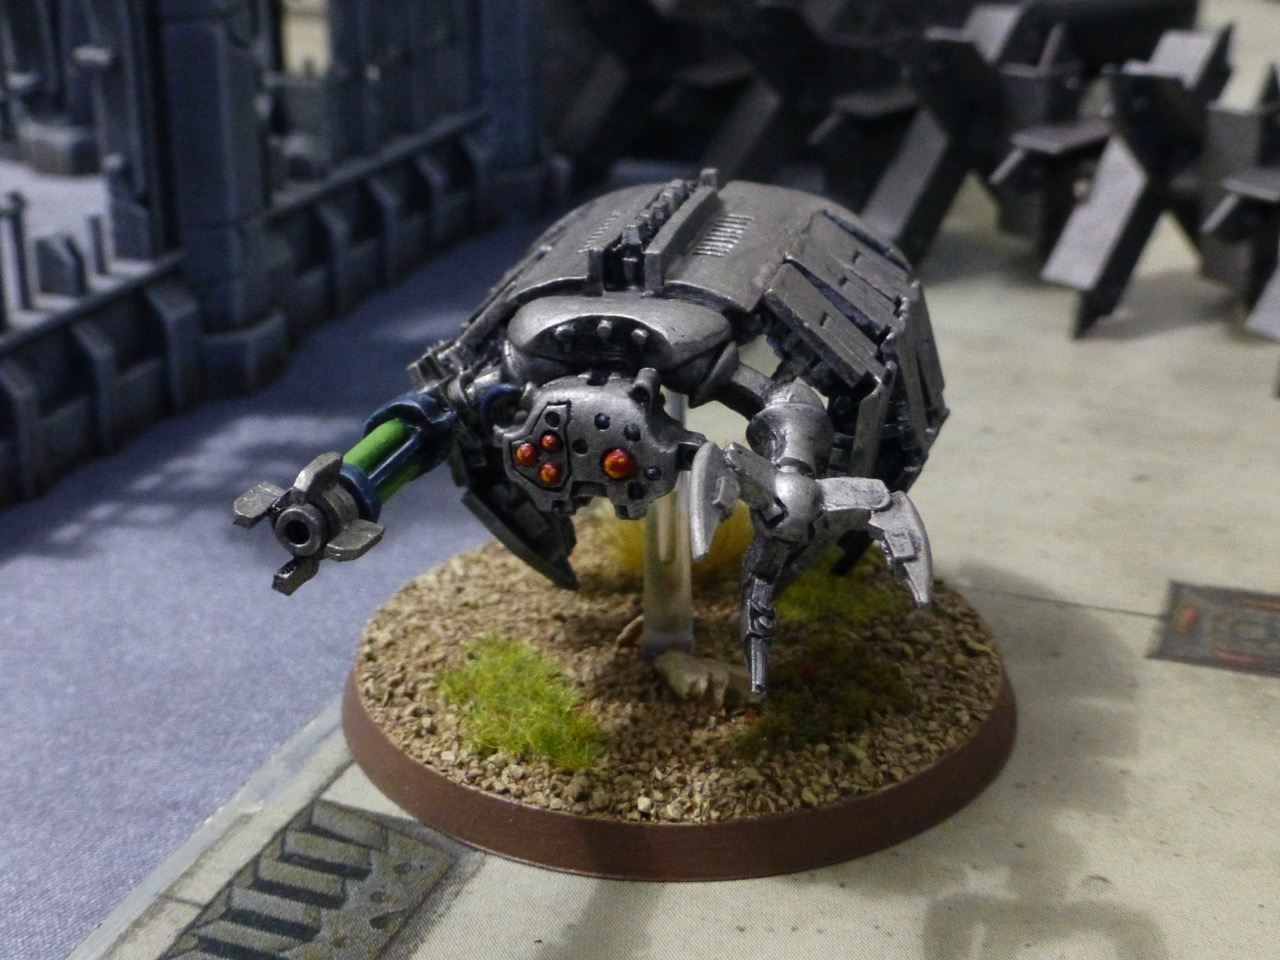 Floating beetle-like robotic construct with a rending claw and long gun